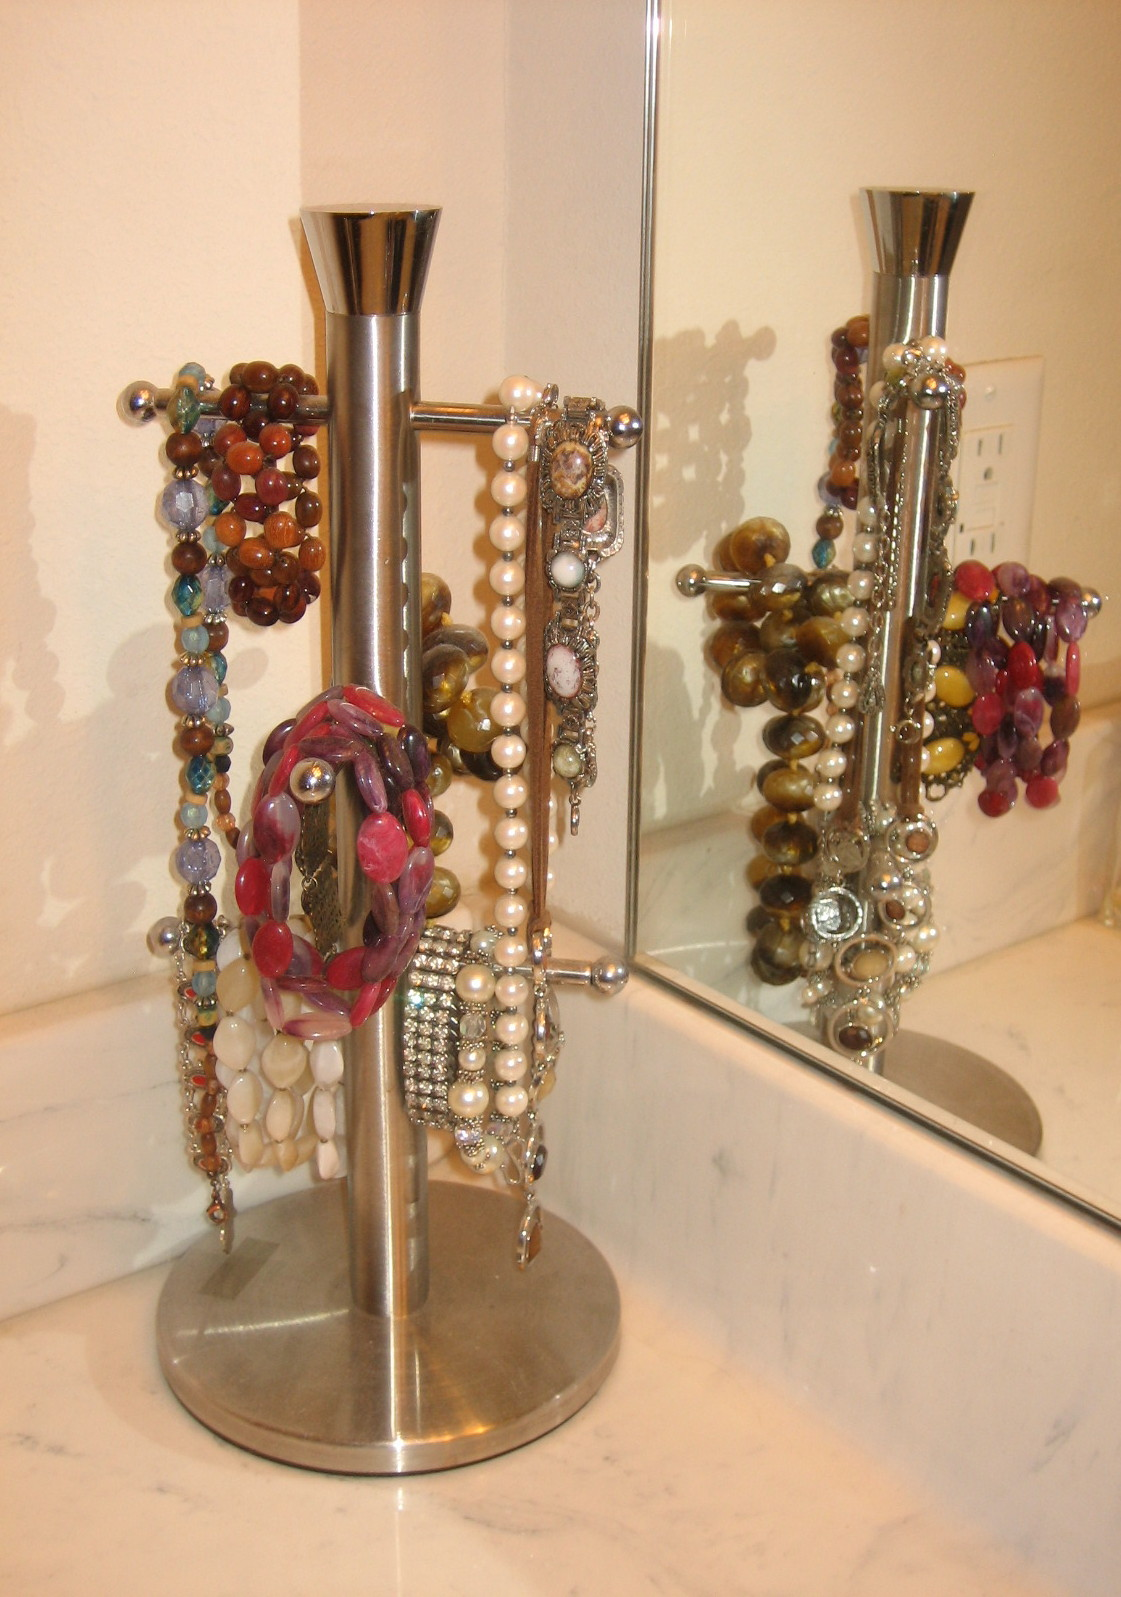 Bracelet Organizer Ideas A Few Ideas For Storing Jewelry Organizing Madison Blog